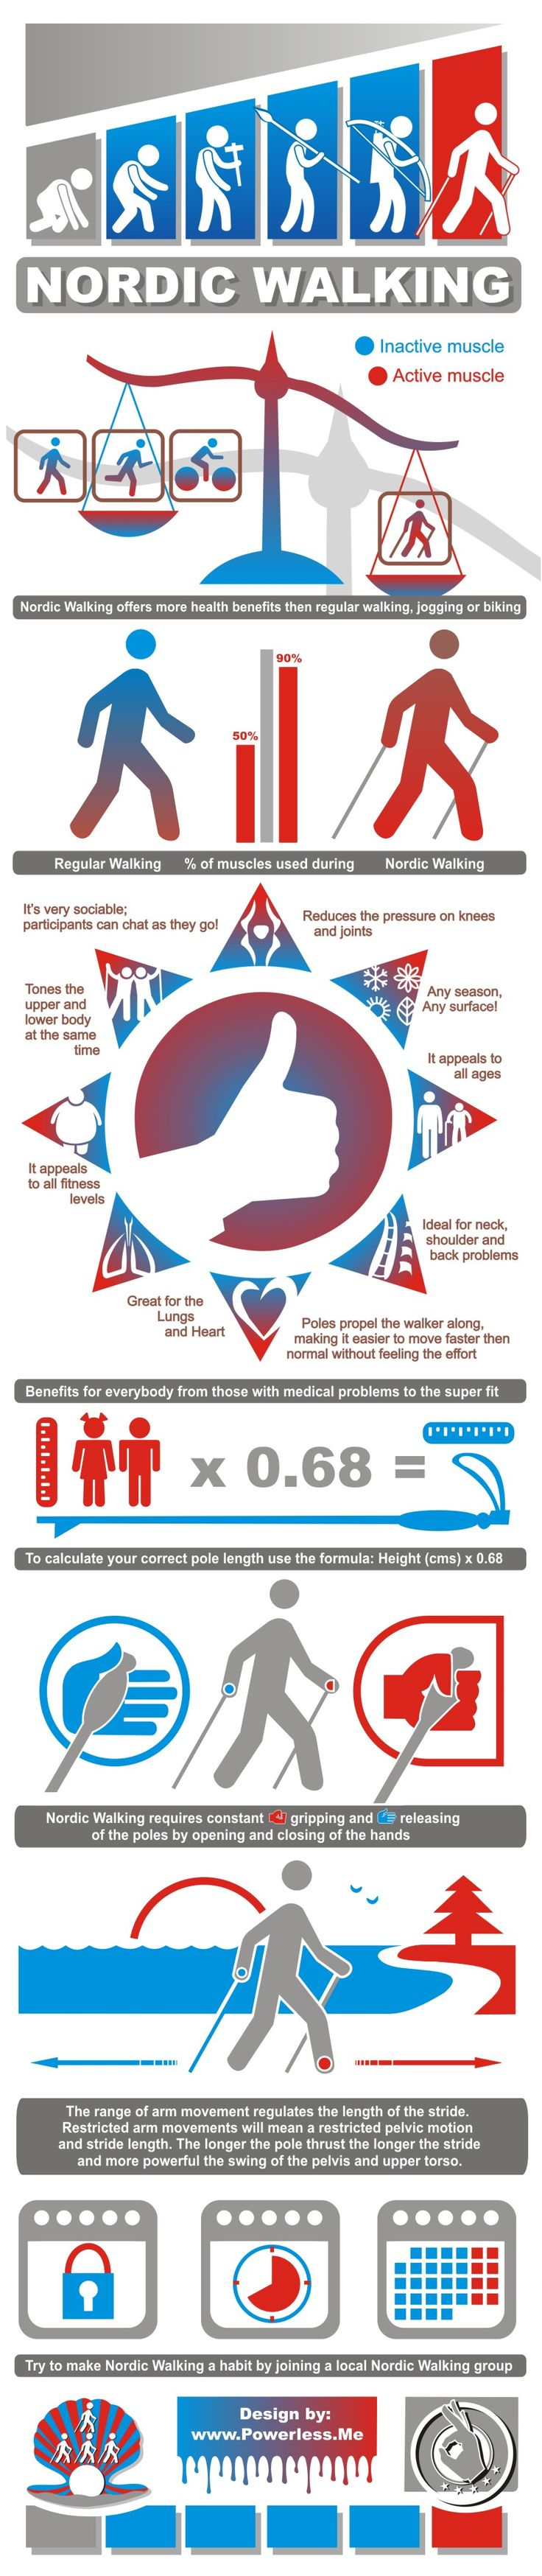 infographic on nordic walking... it all makes sense :)